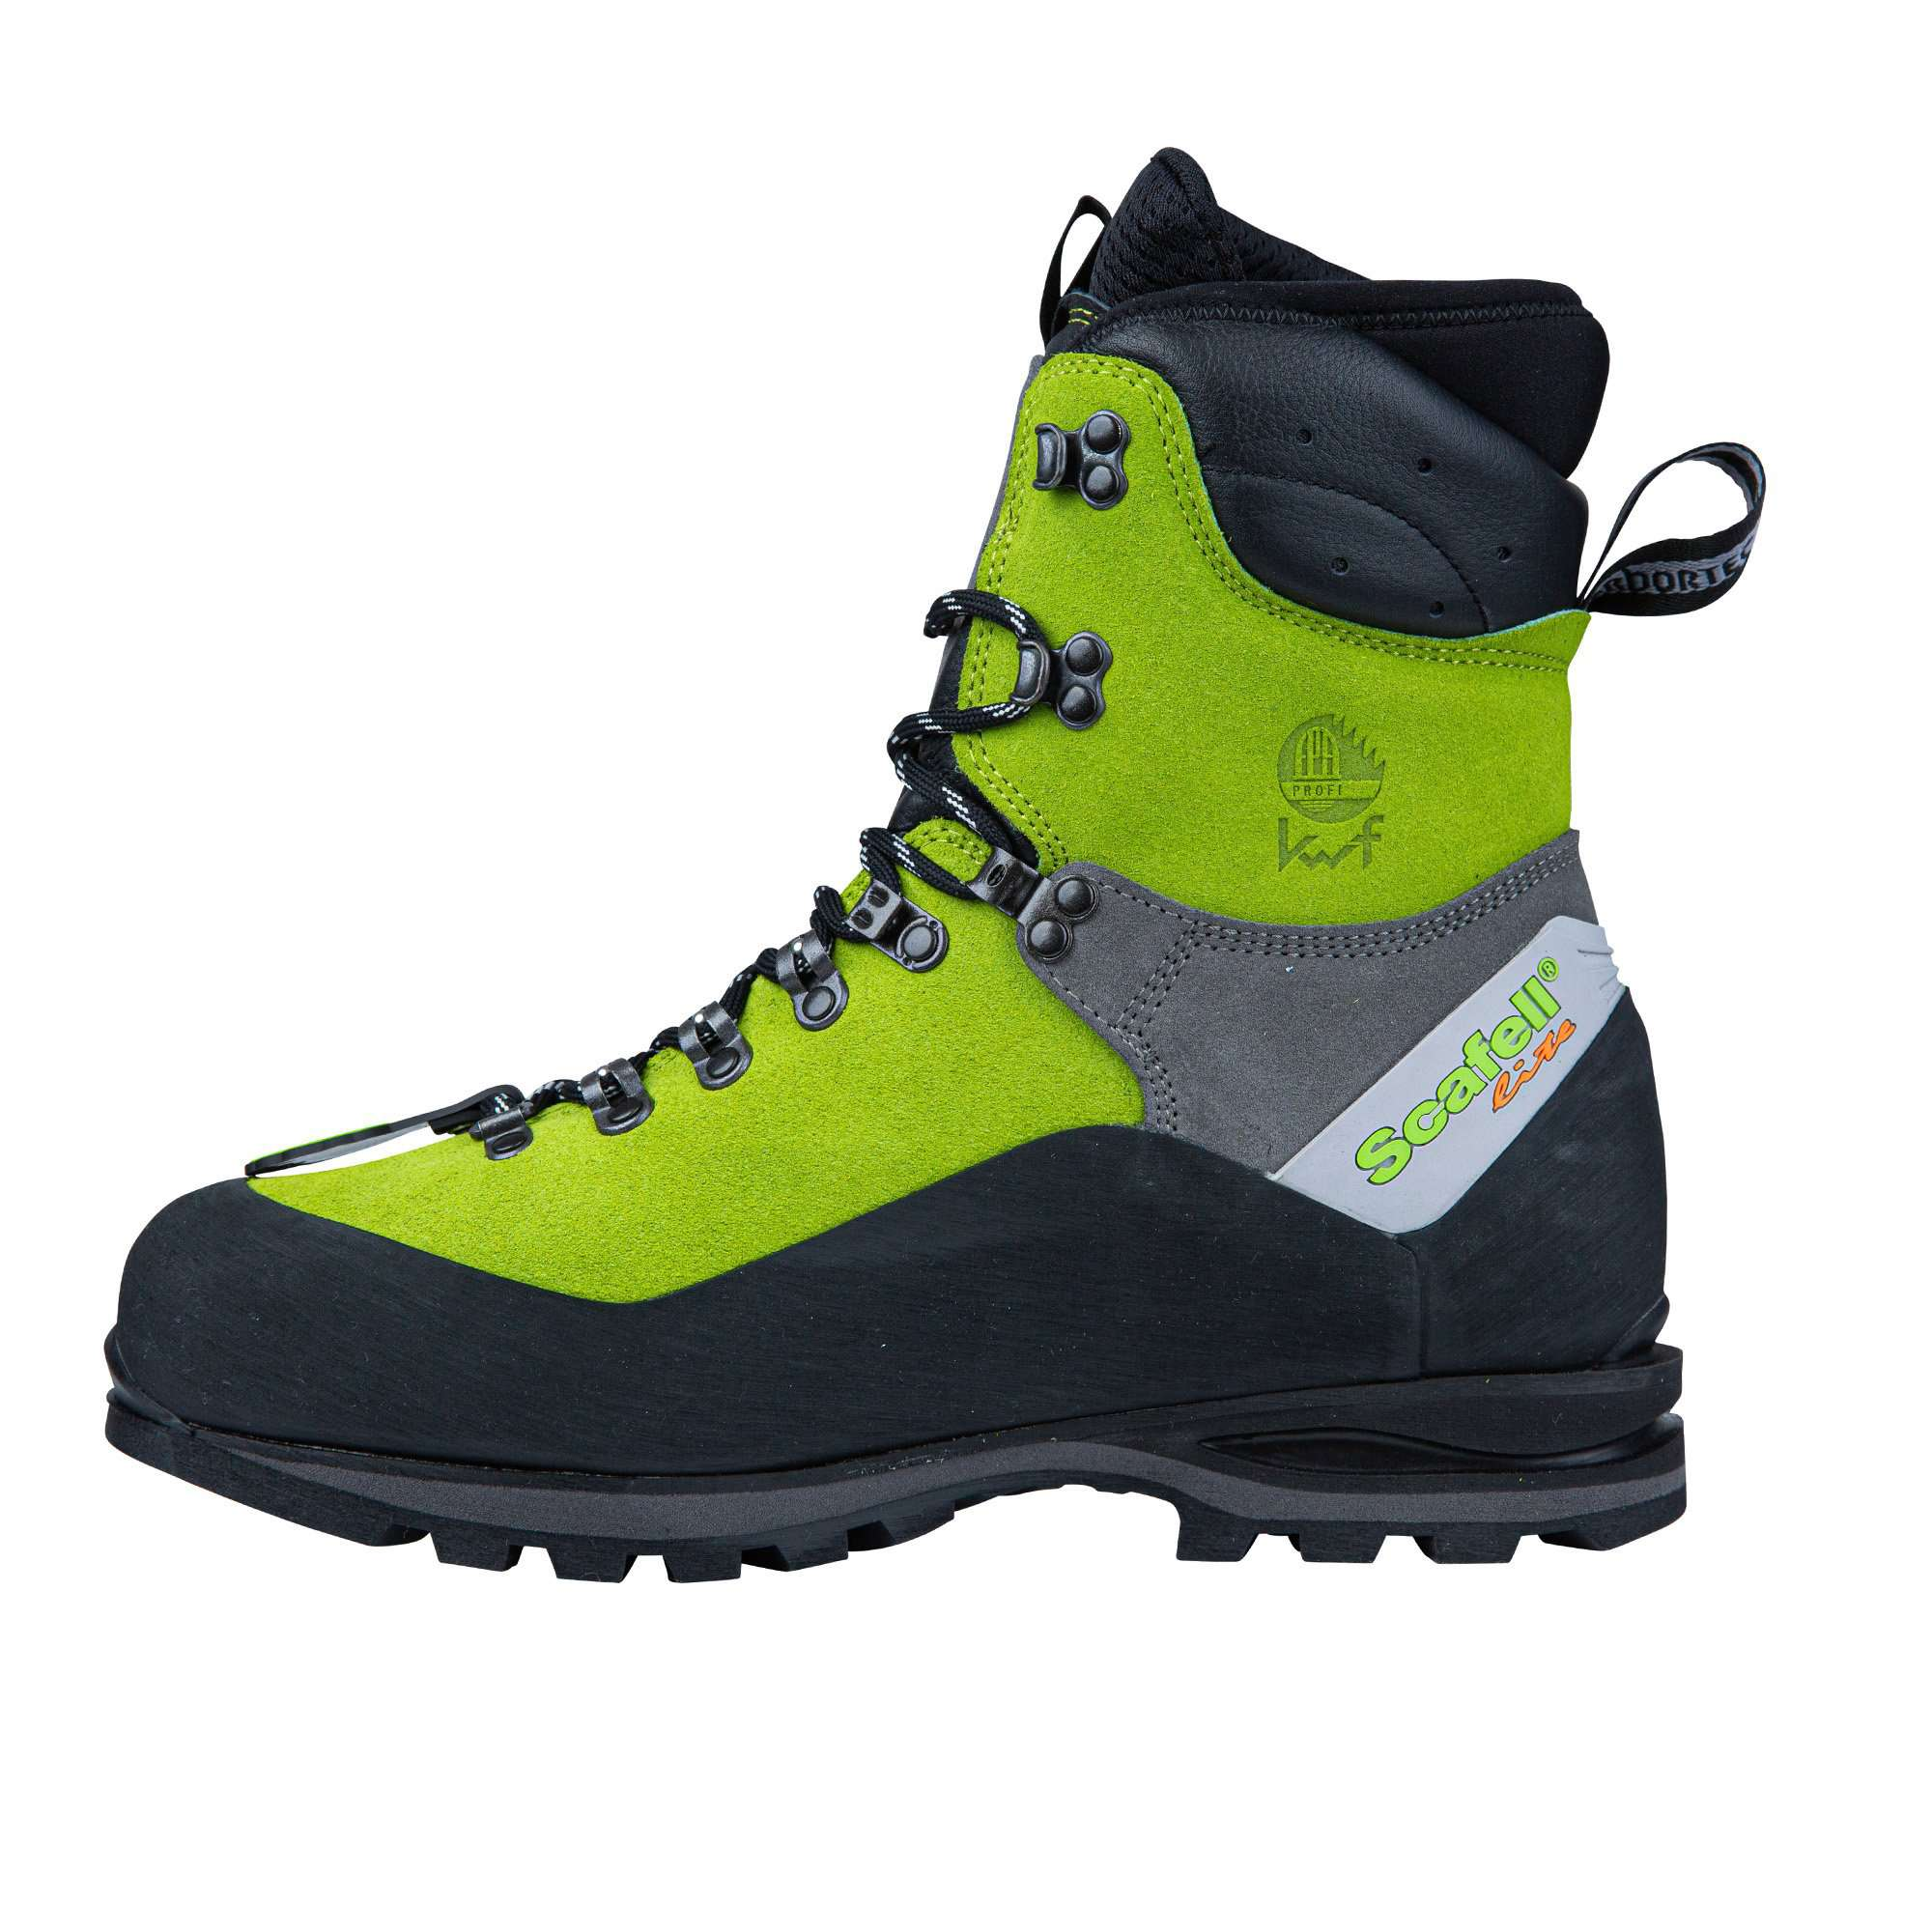 Scafell Lite Class 2 Chainsaw Boot - Lime - AT33000 - Arbortec Forestwear